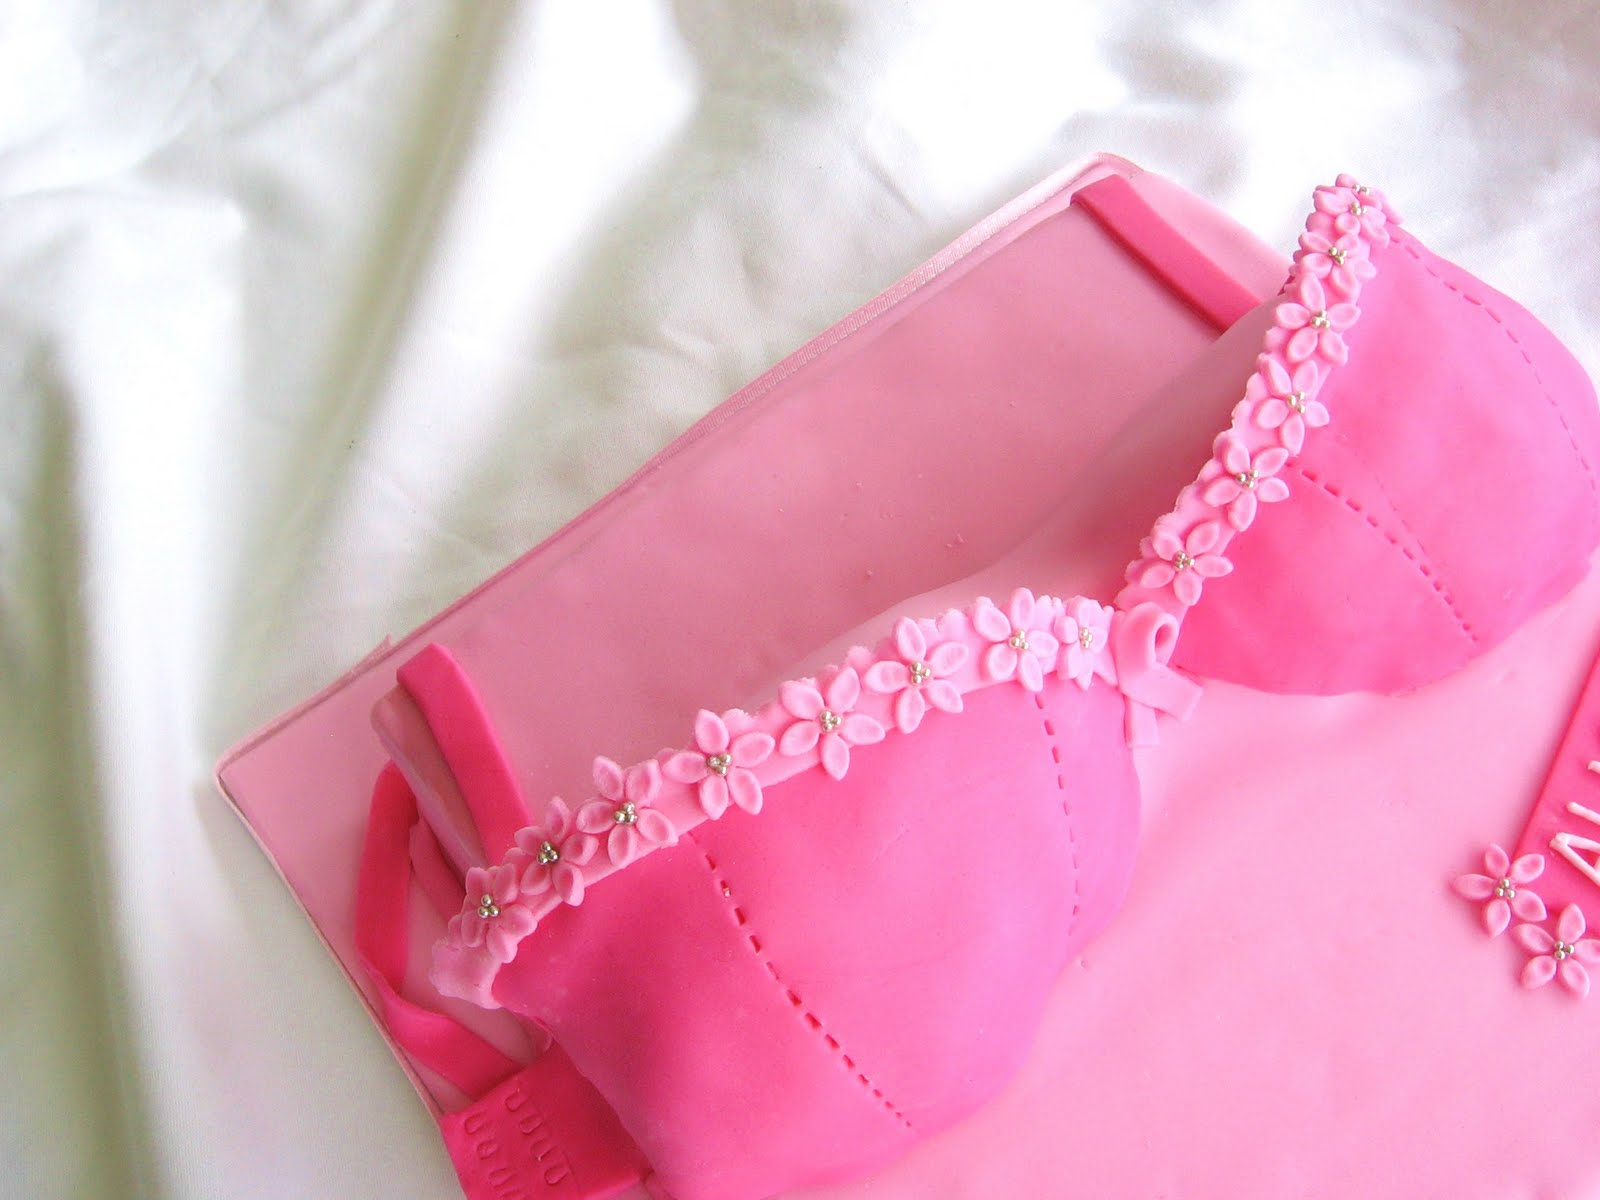 Breast Cancer Bra Decorating Ideas http://rachelwarnercakes.blogspot.com/2011/06/breast-cancer-bra-cake.html